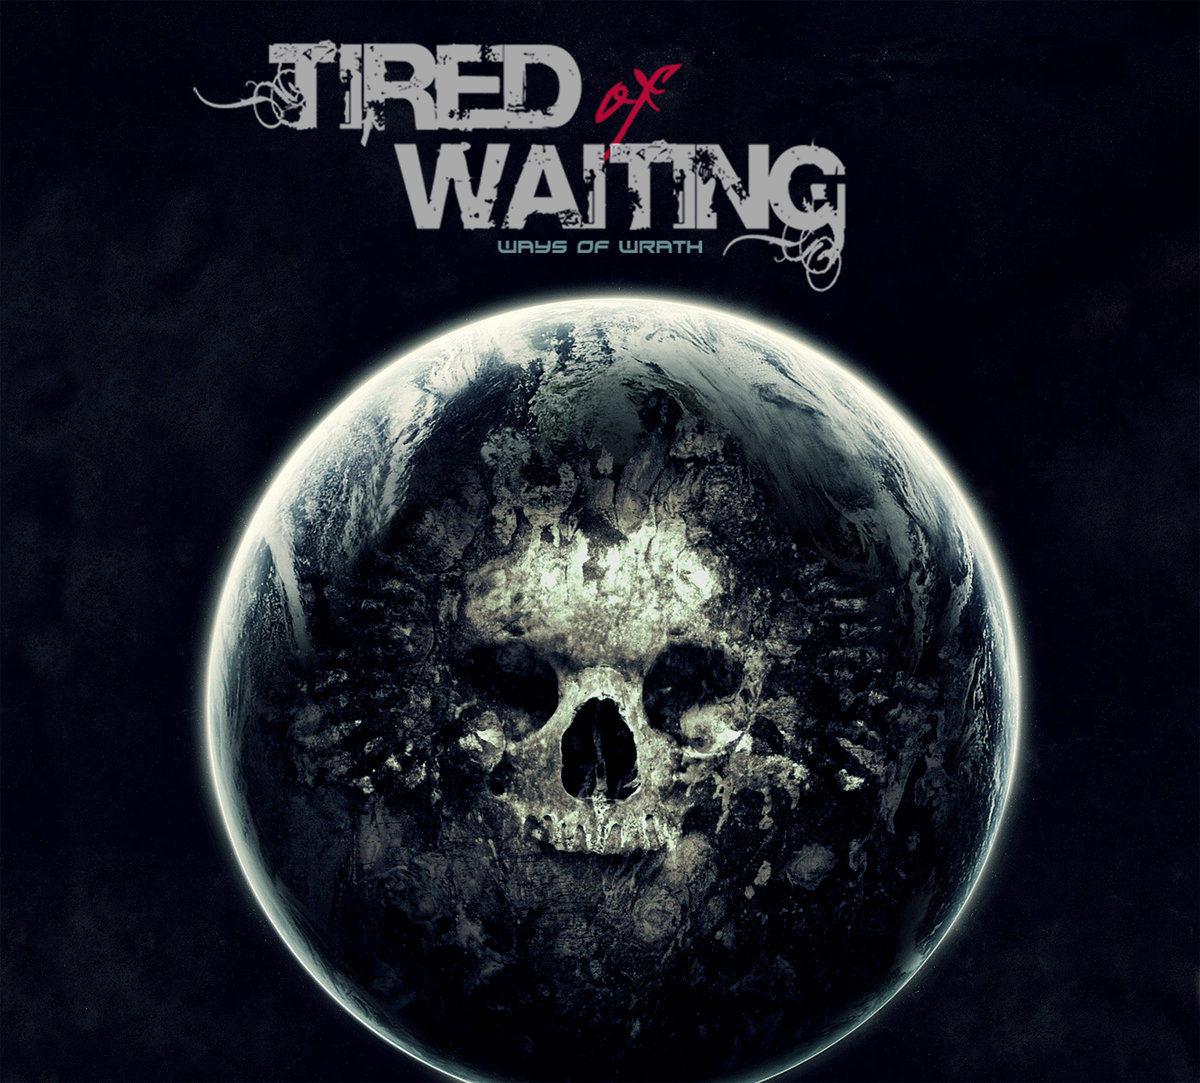 Tired of Waiting - Ways of Wrath